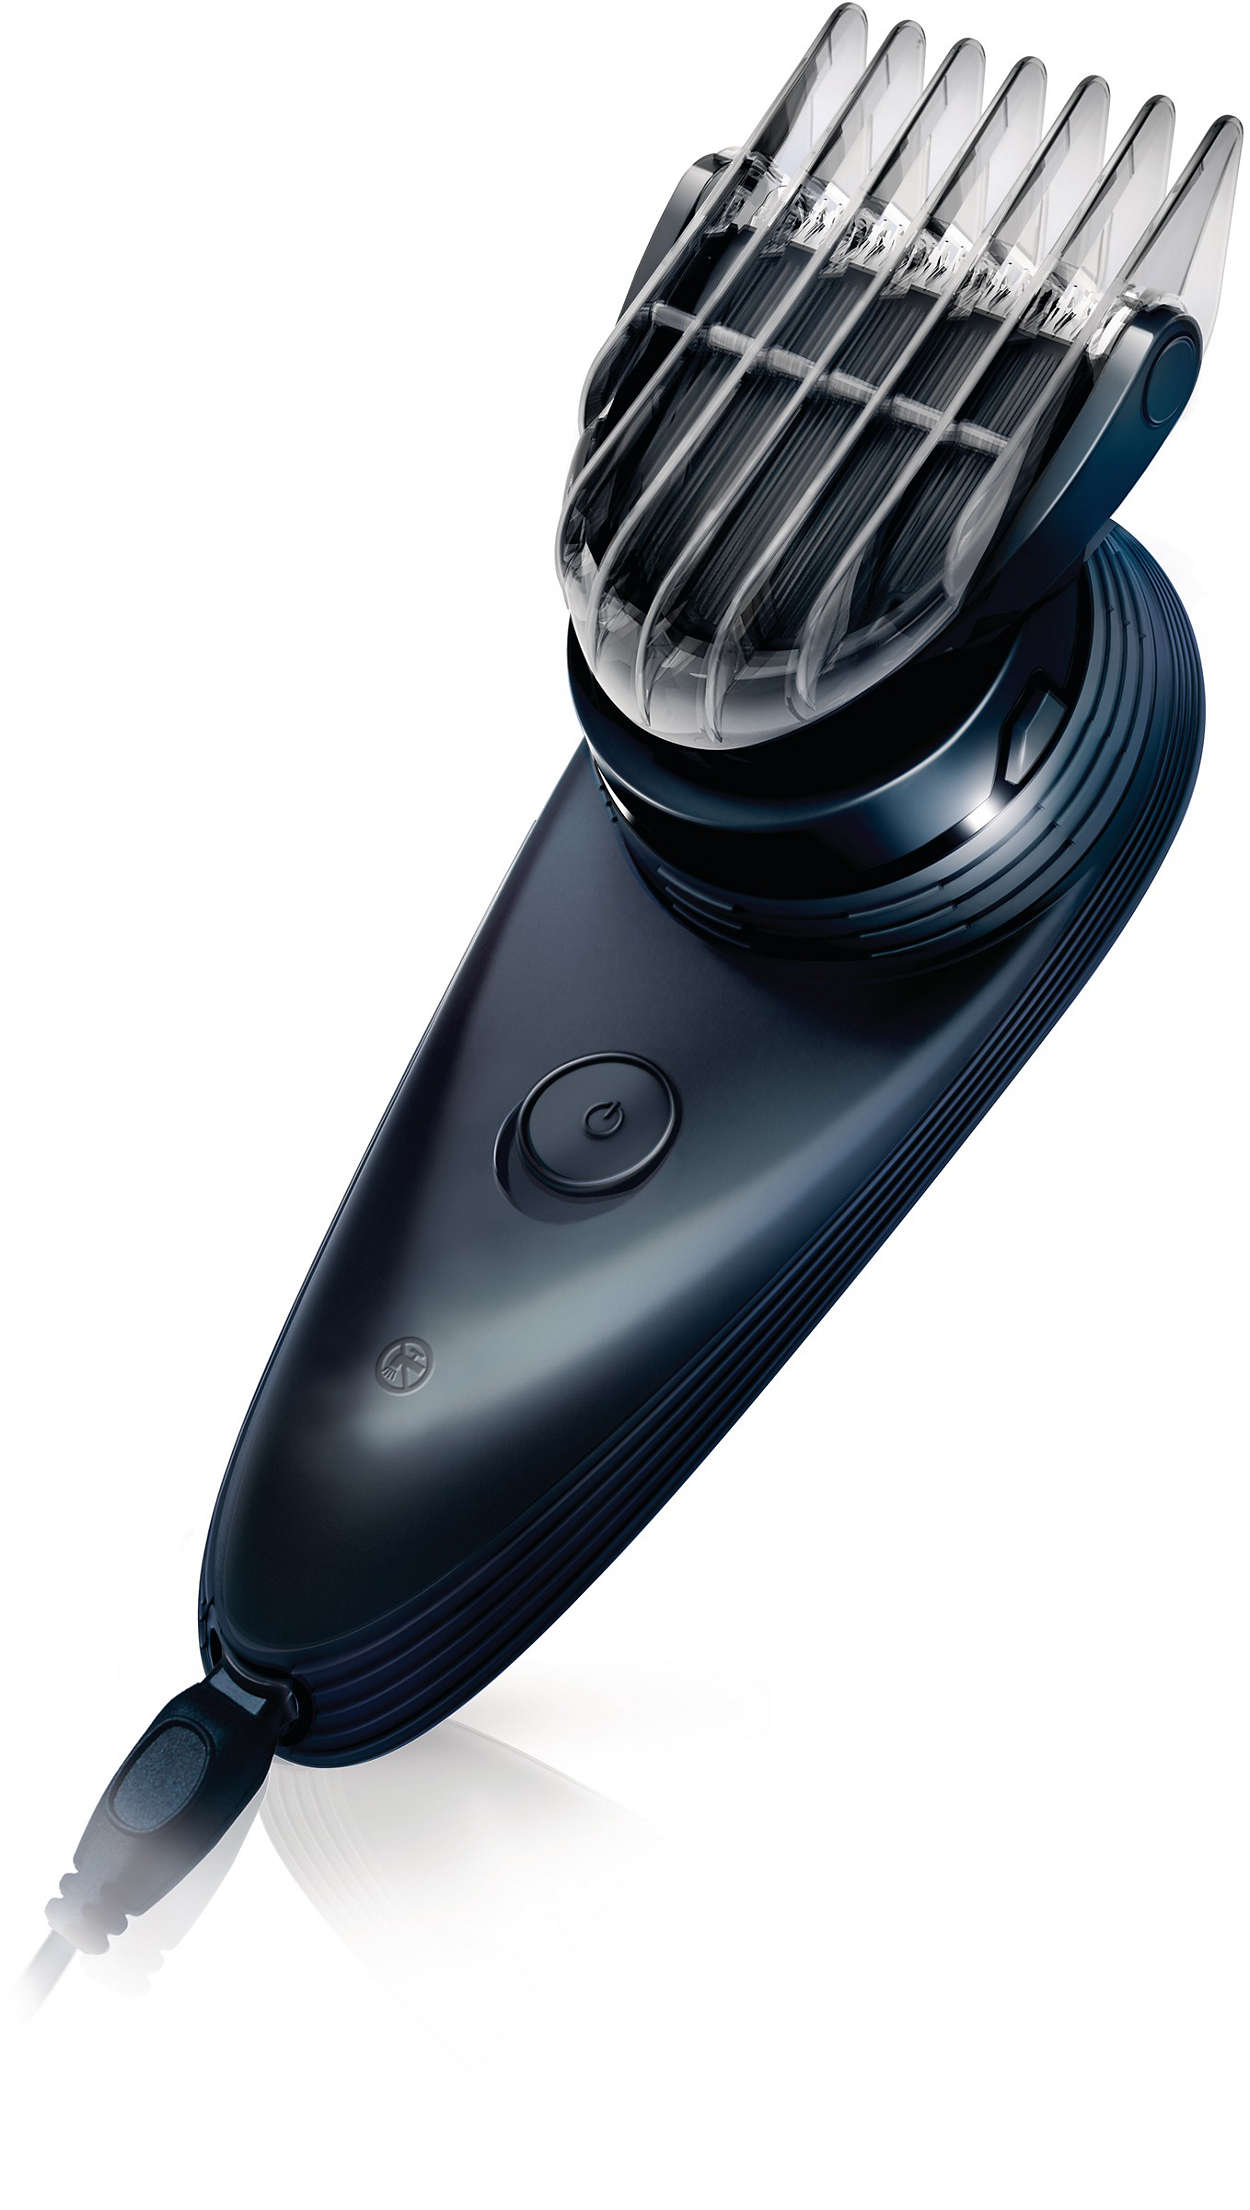 Qc551015 philips philips do it yourself hair clipper qc551015 stainless steel blades 8 length settings corded use solutioingenieria Image collections